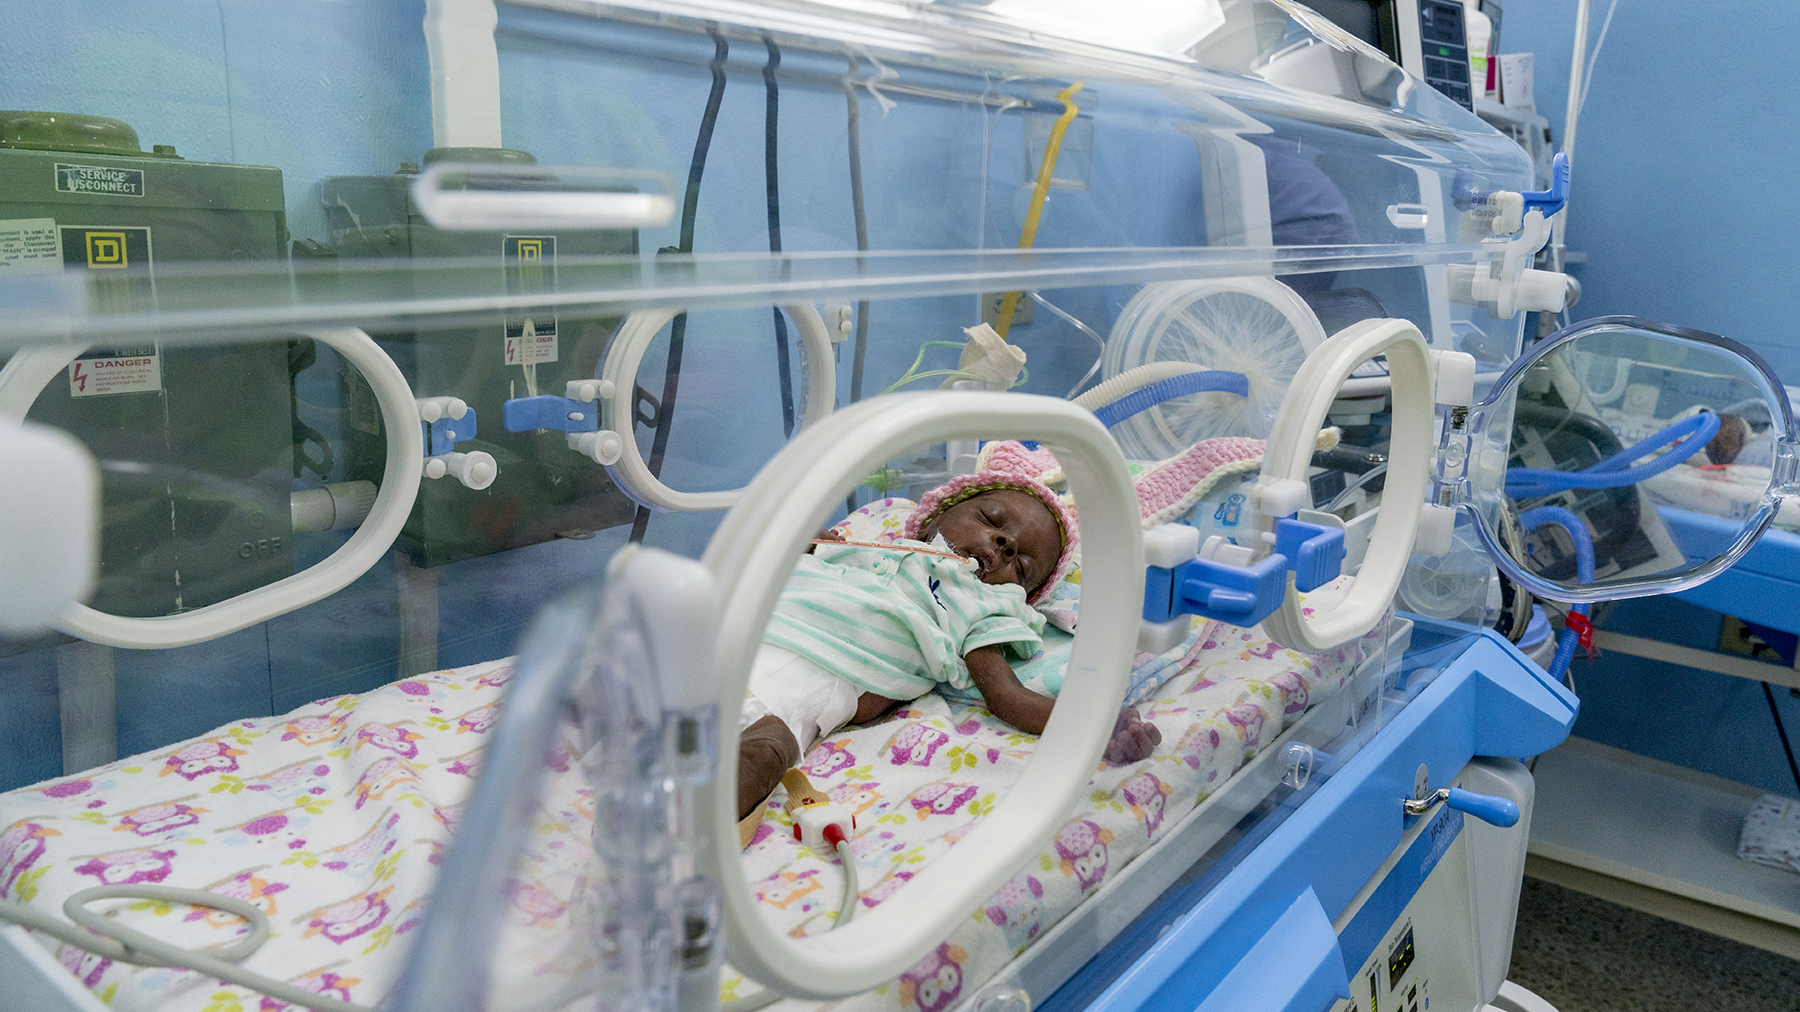 Infants often have respiratory distress when they are born early, and Direct Relief has been supporting hospitals in Jamaica with a critical medication that helps babies breathe. Here, an infant rests at a hospital supported by the Issa Trust Foundation in Jamaica. (Photo by C. Panetta)